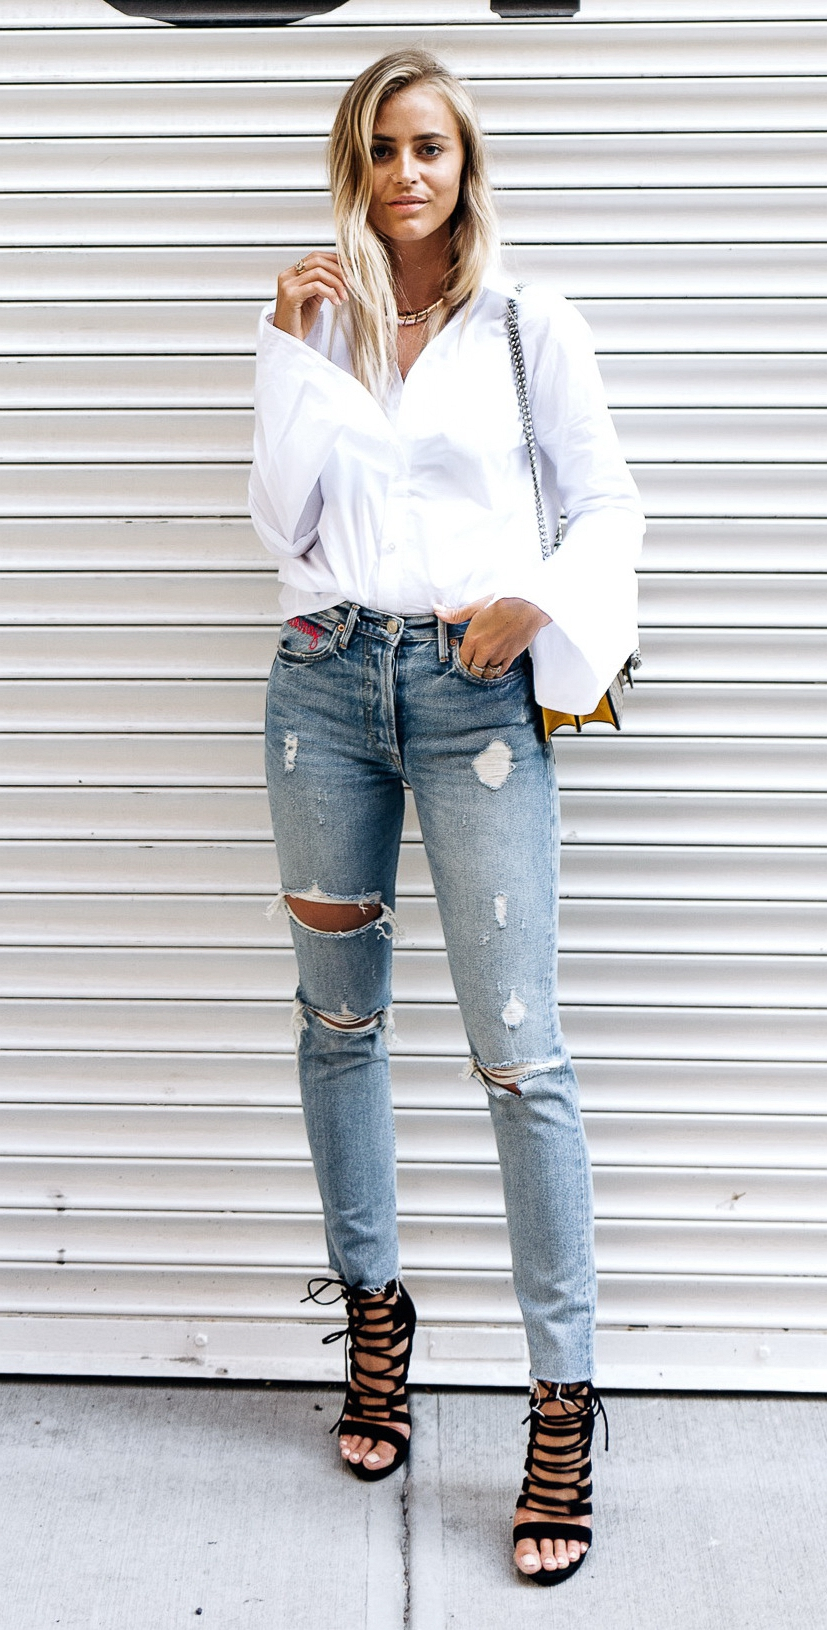 35 Stylish Outfit Ideas For Women